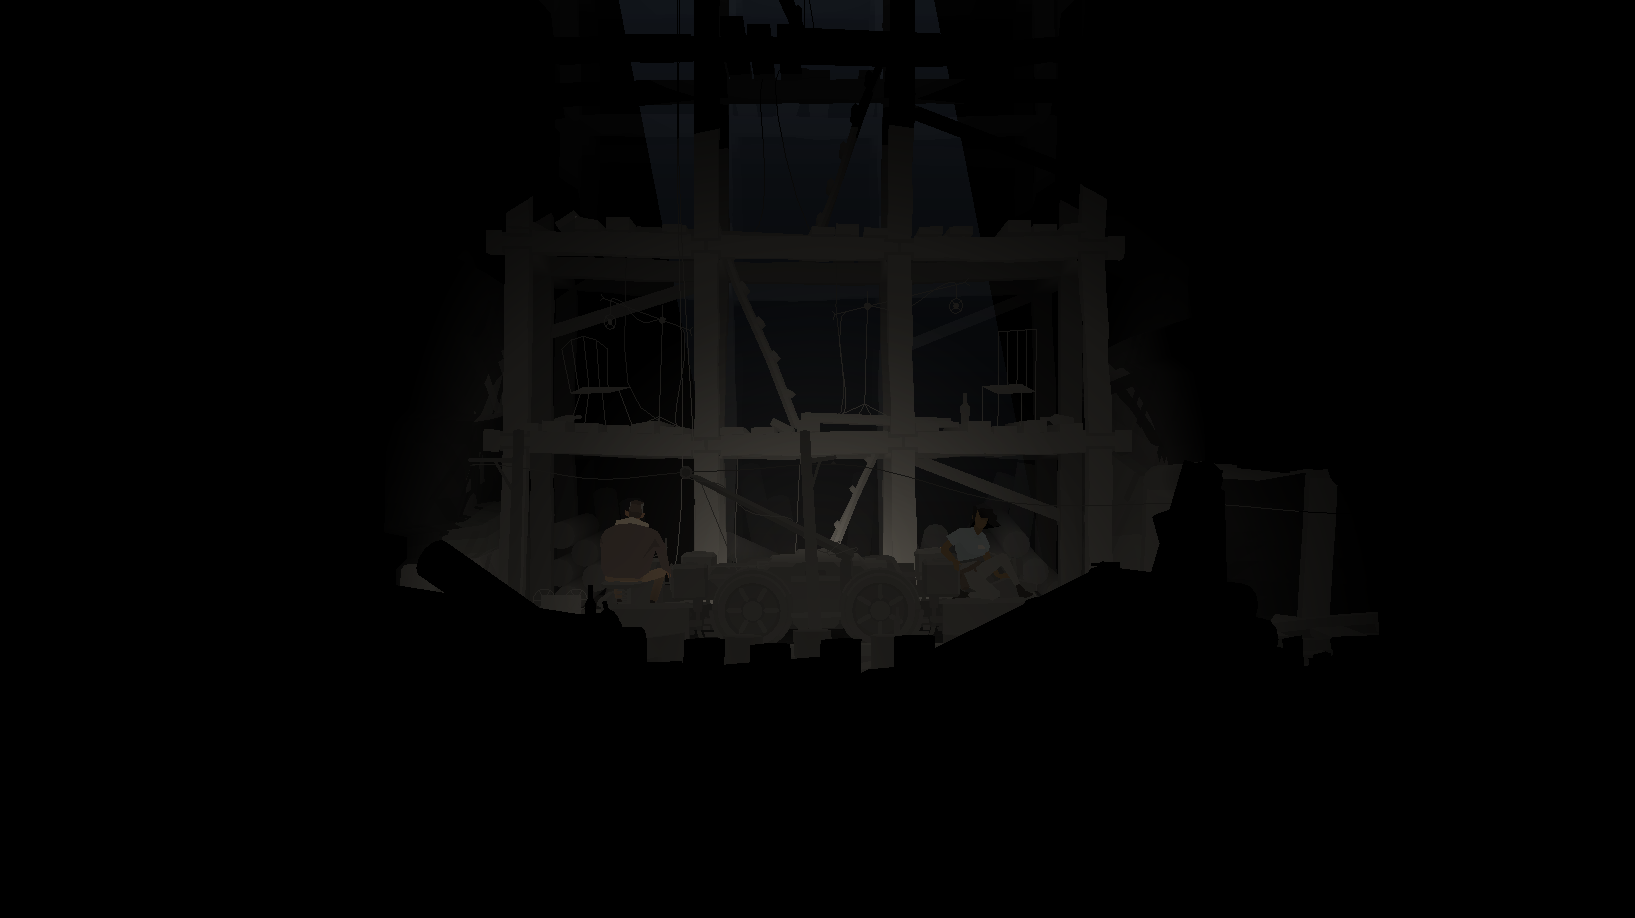 Mine Stage (still from KRZ - courtesy of Carboard Computer)